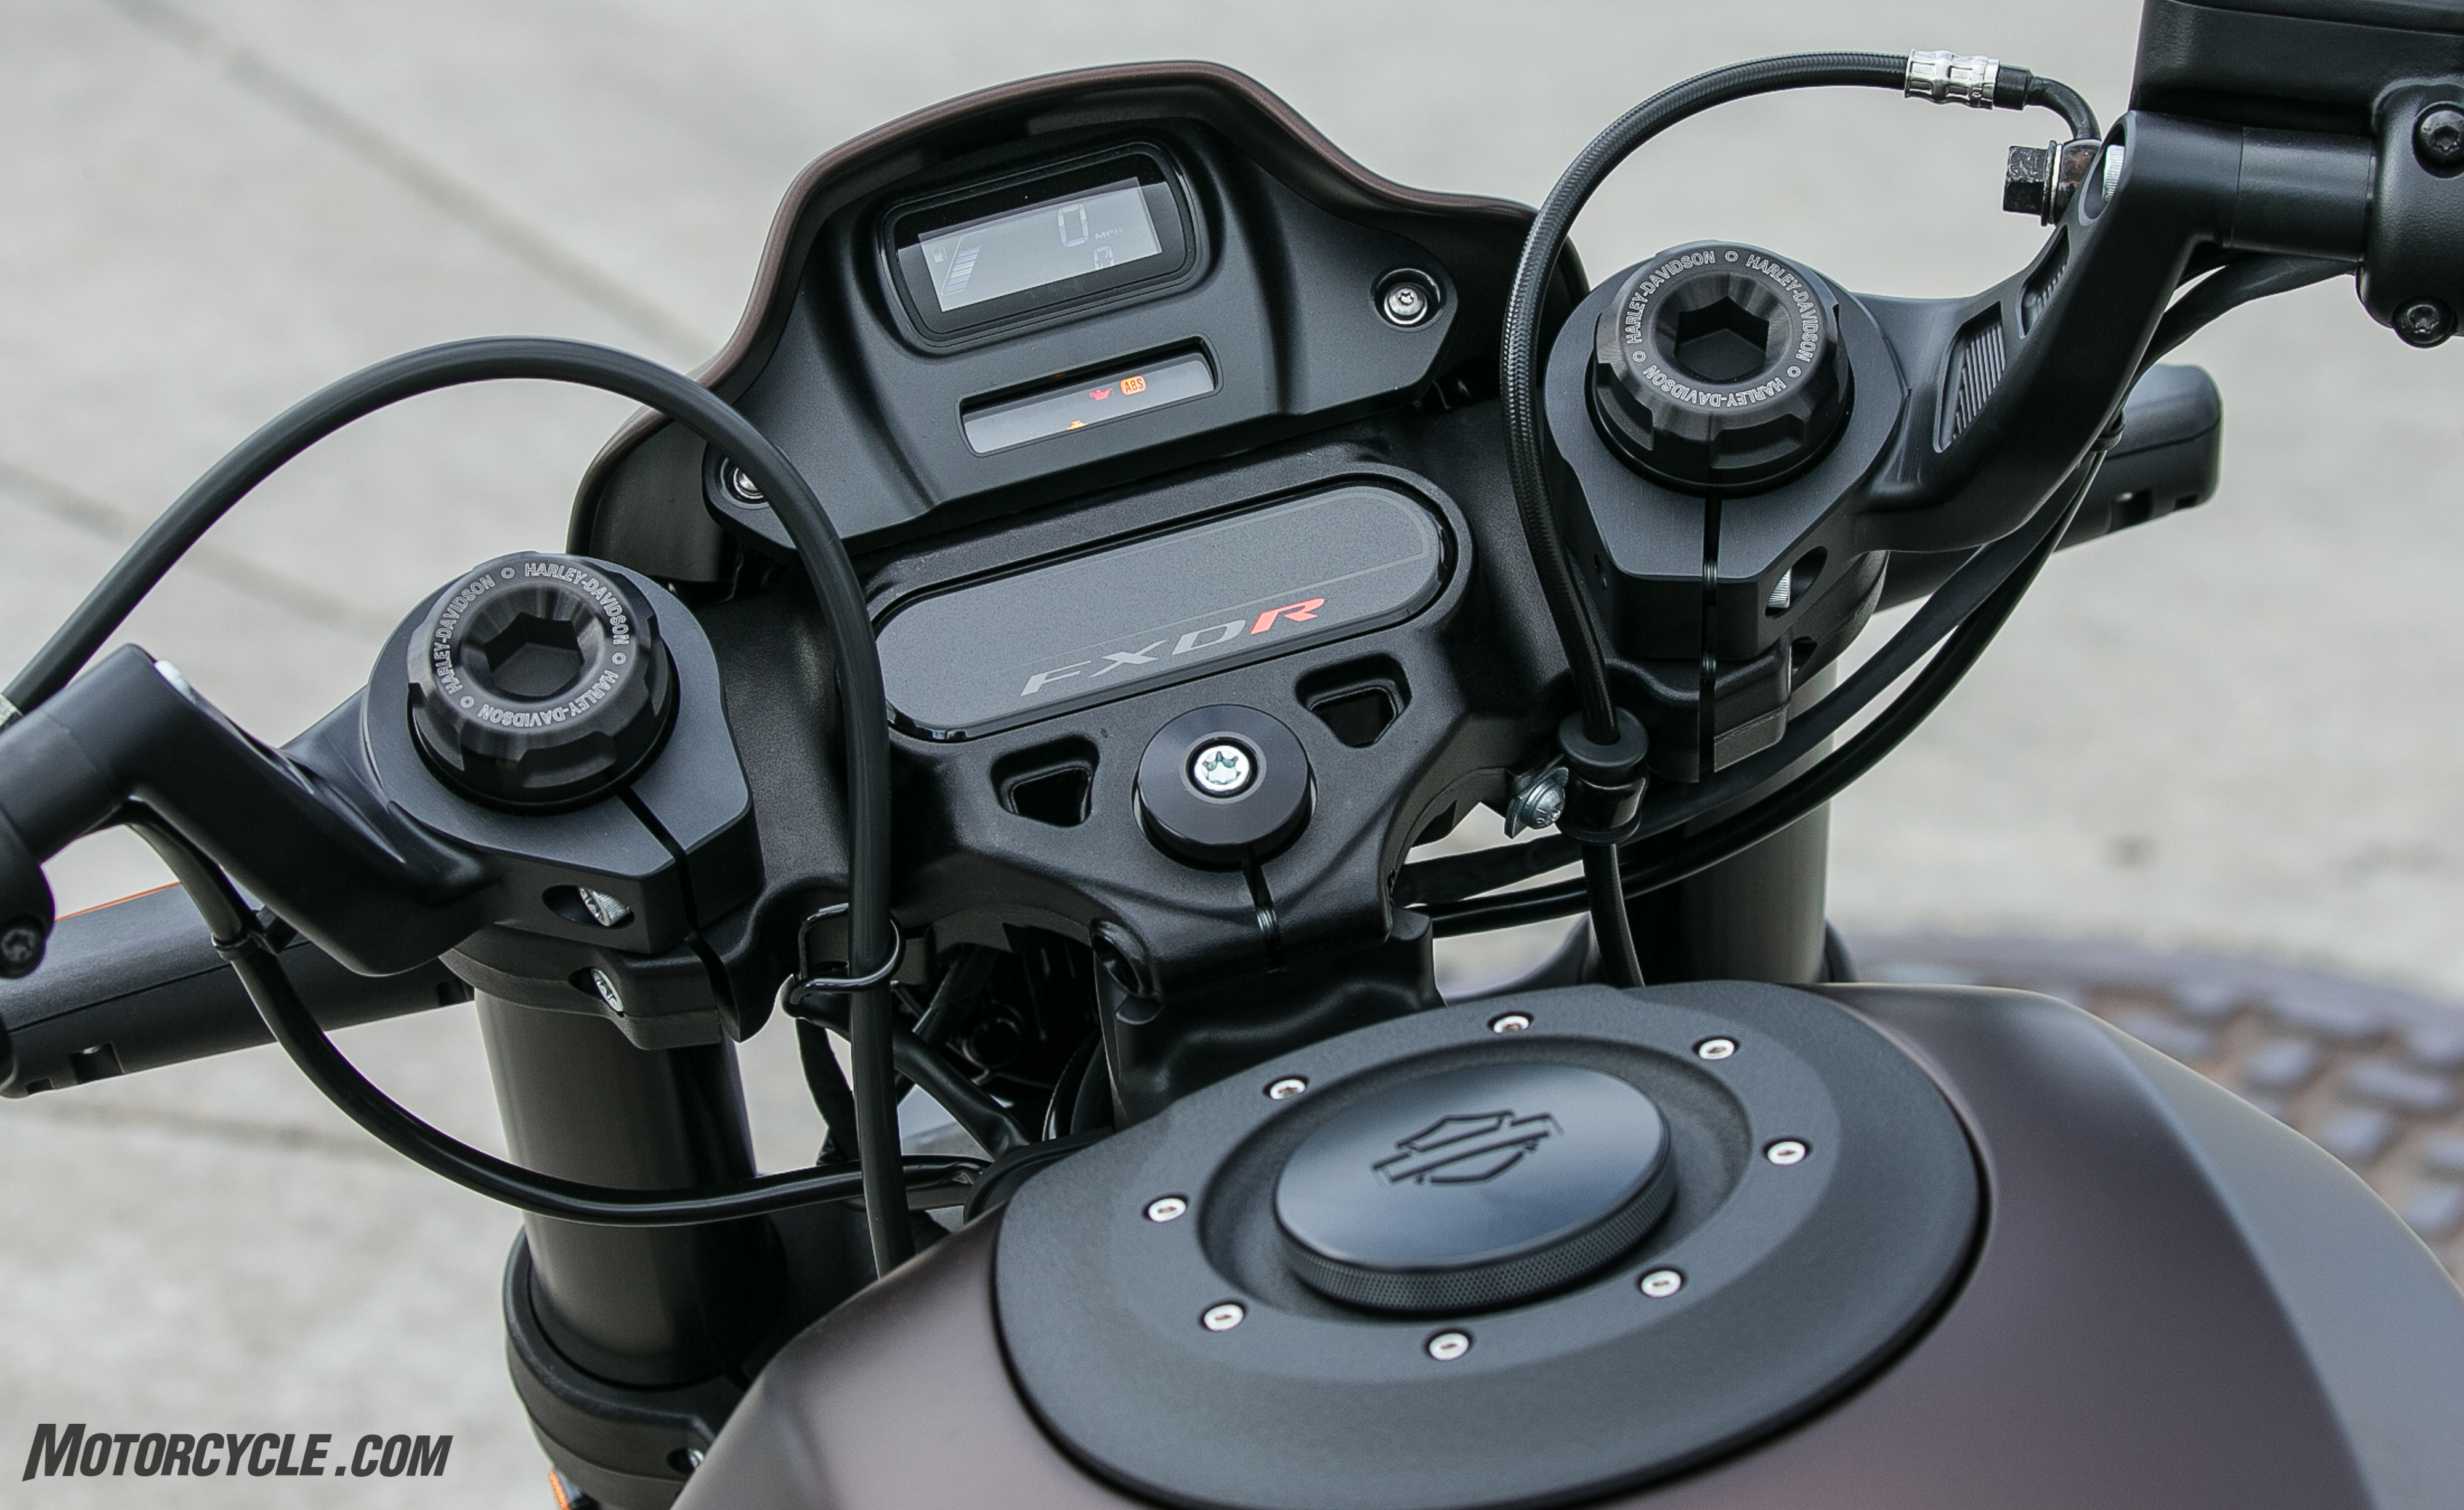 2019 Harley Davidson Fxdr 114 First Ride Review: 2019 Harley-Davidson FXDR 114 Review